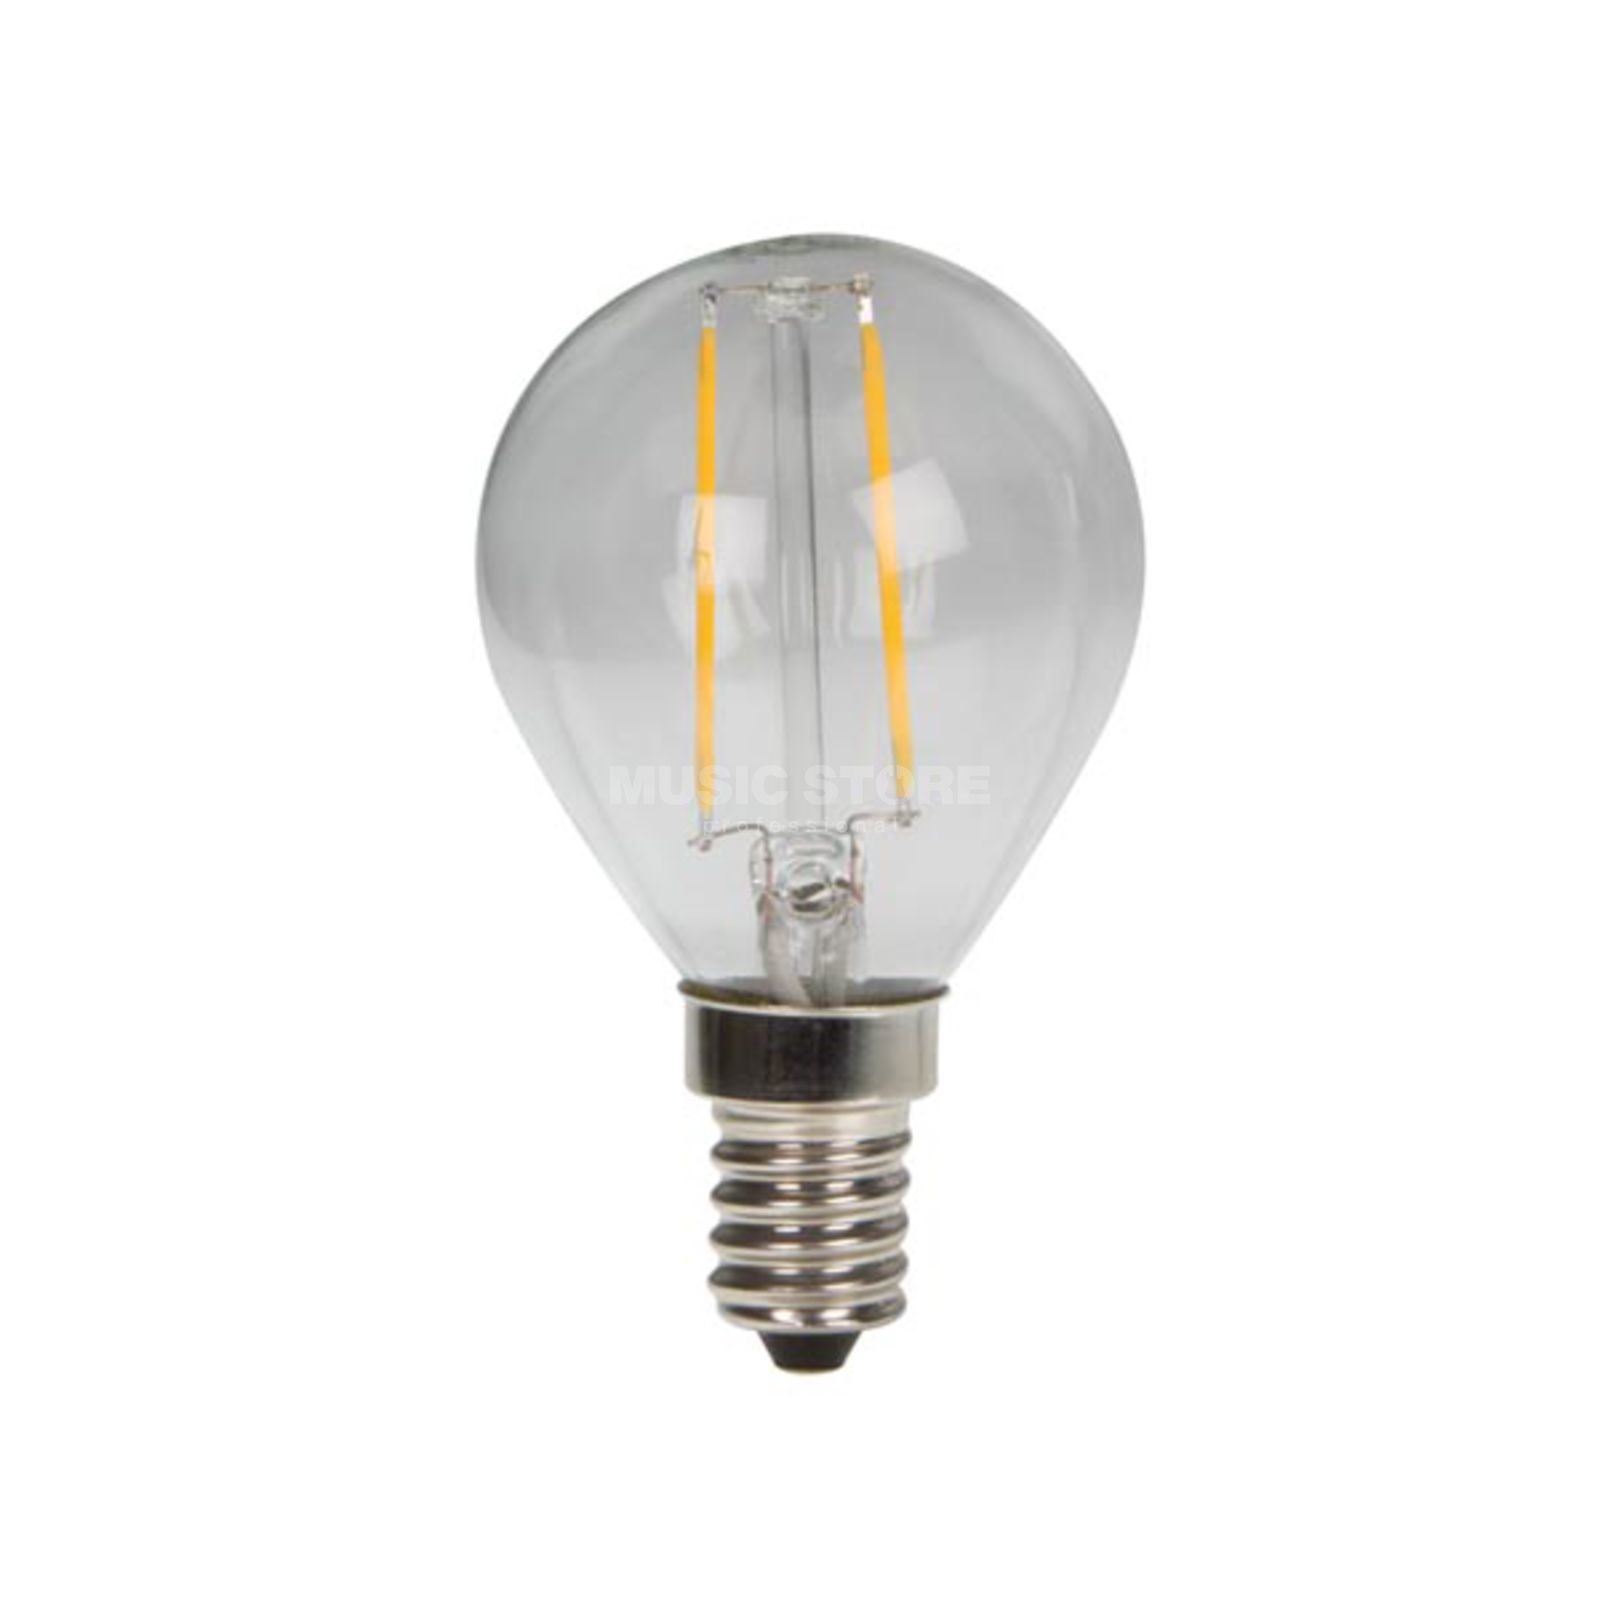 HQ Power LED Filament E14, 2W Leuchtmittel Edison G45, 2700K Produktbillede